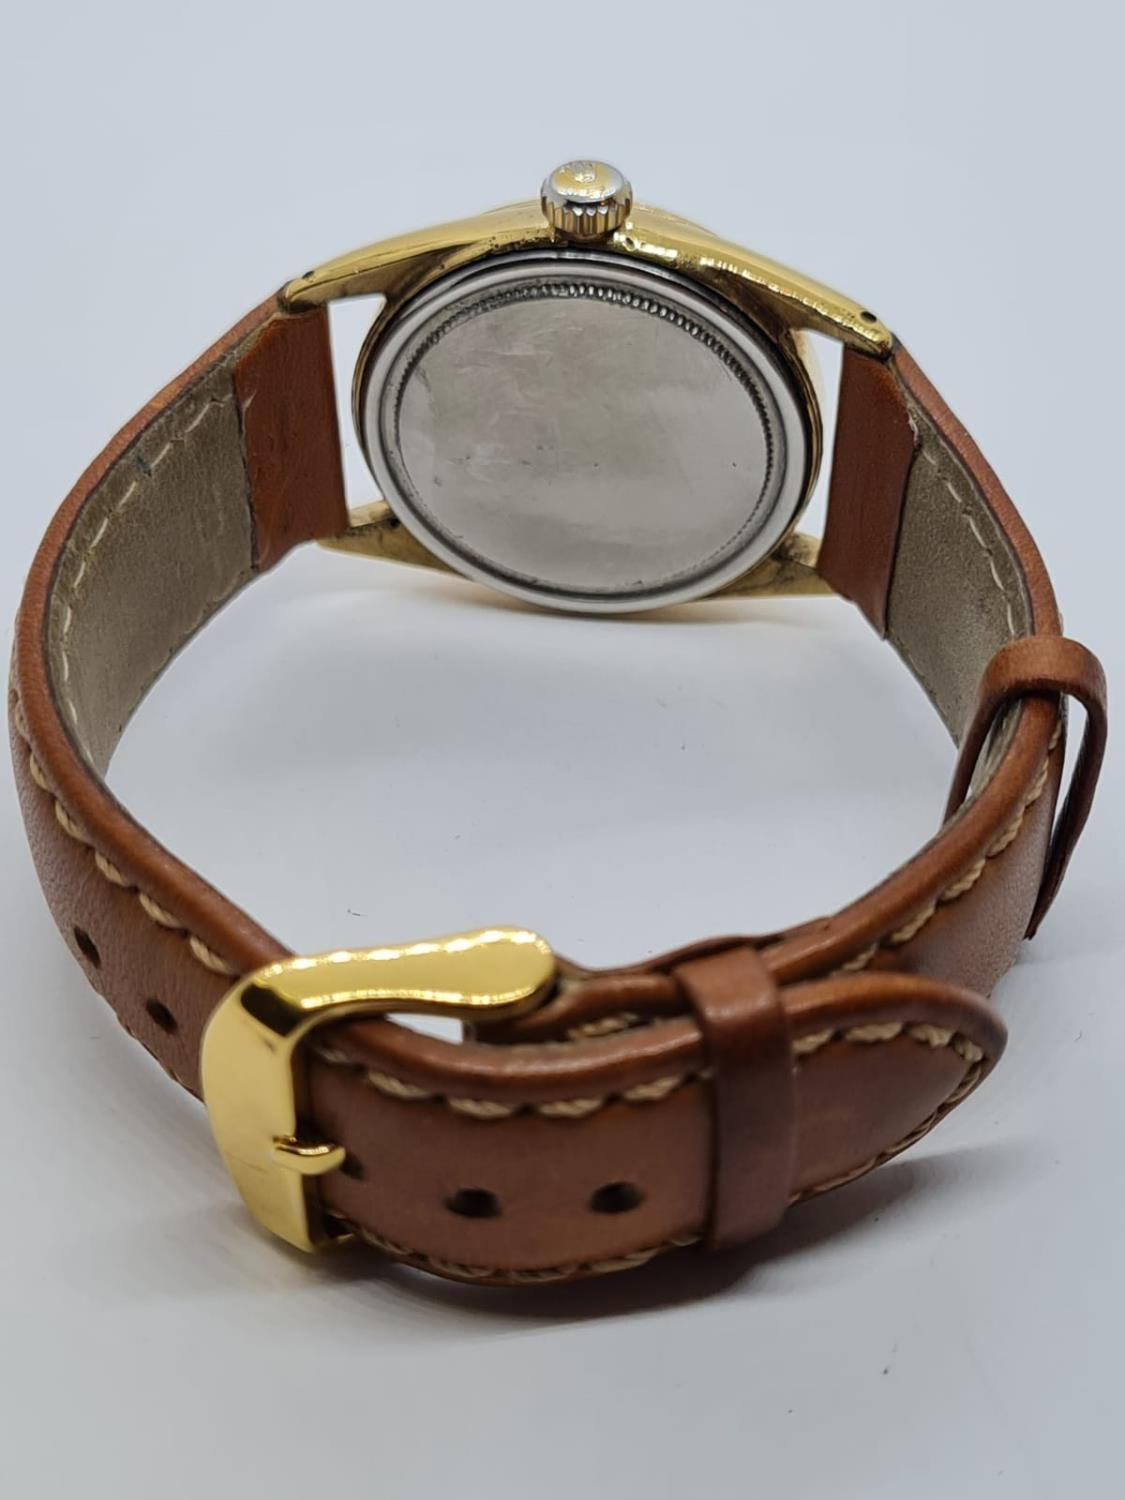 Vintage Rolex Oysterdate Precision Gents WATCH. Round face and genuine brown leather strap. 32mm - Image 4 of 5